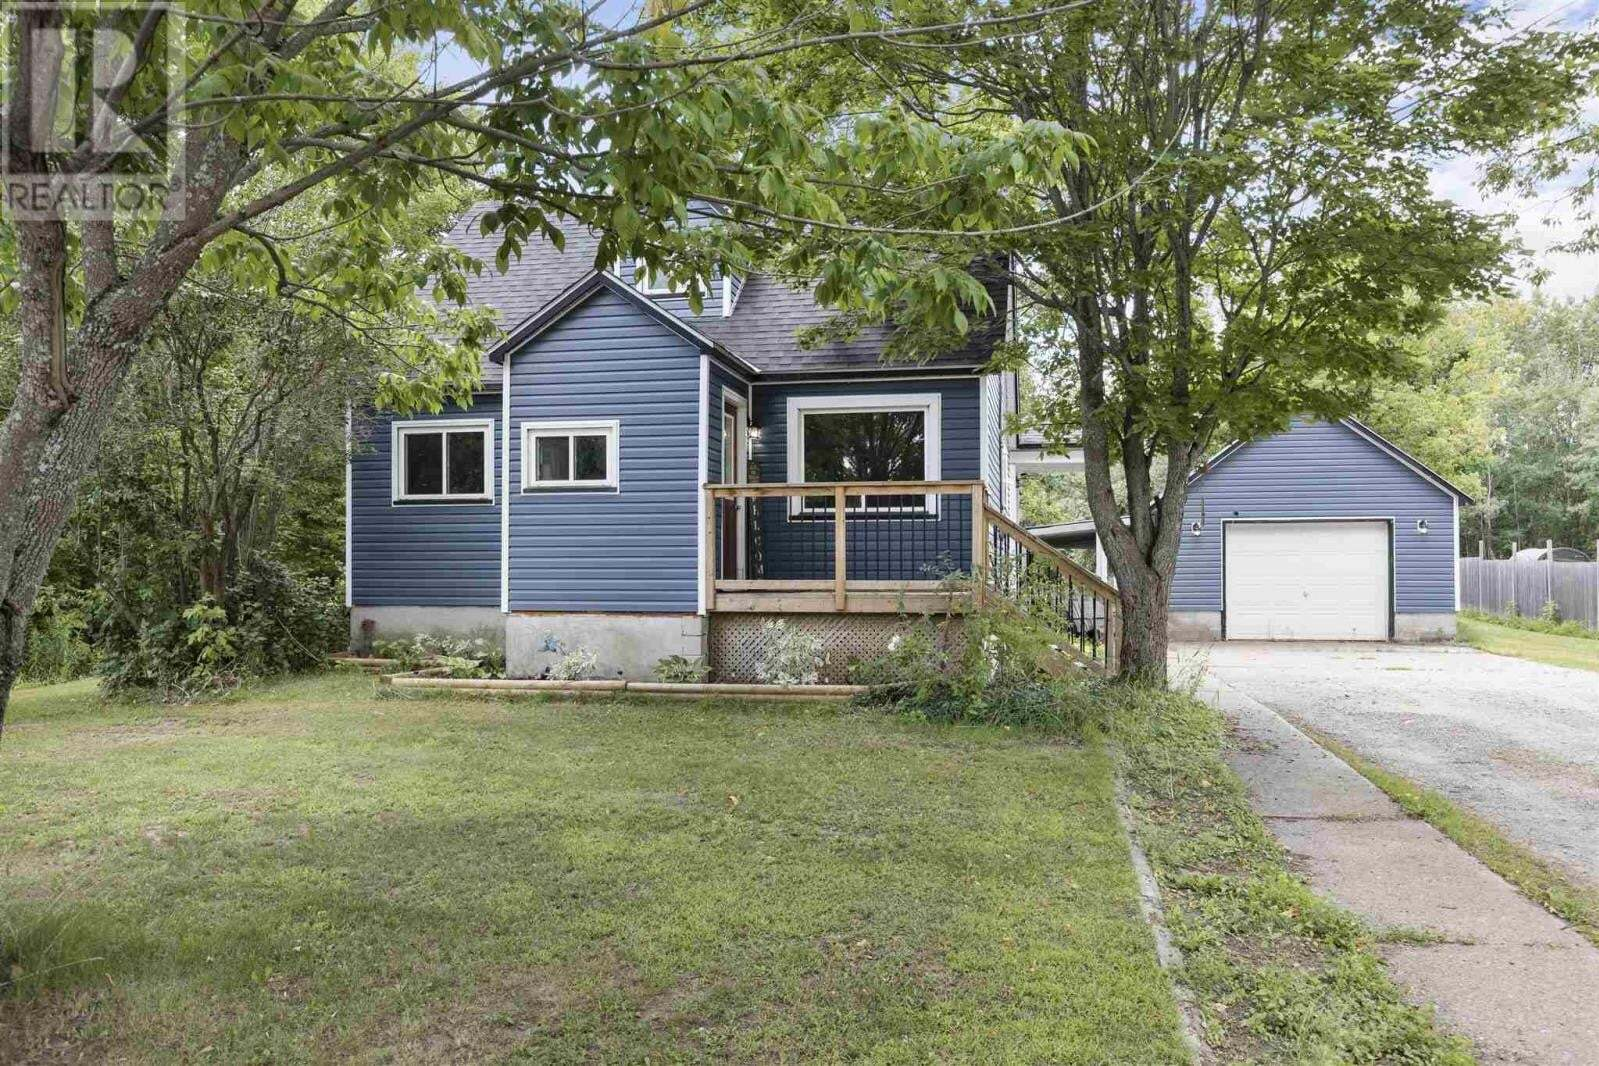 House for sale at 371 Church St Echo Bay Ontario - MLS: SM129373